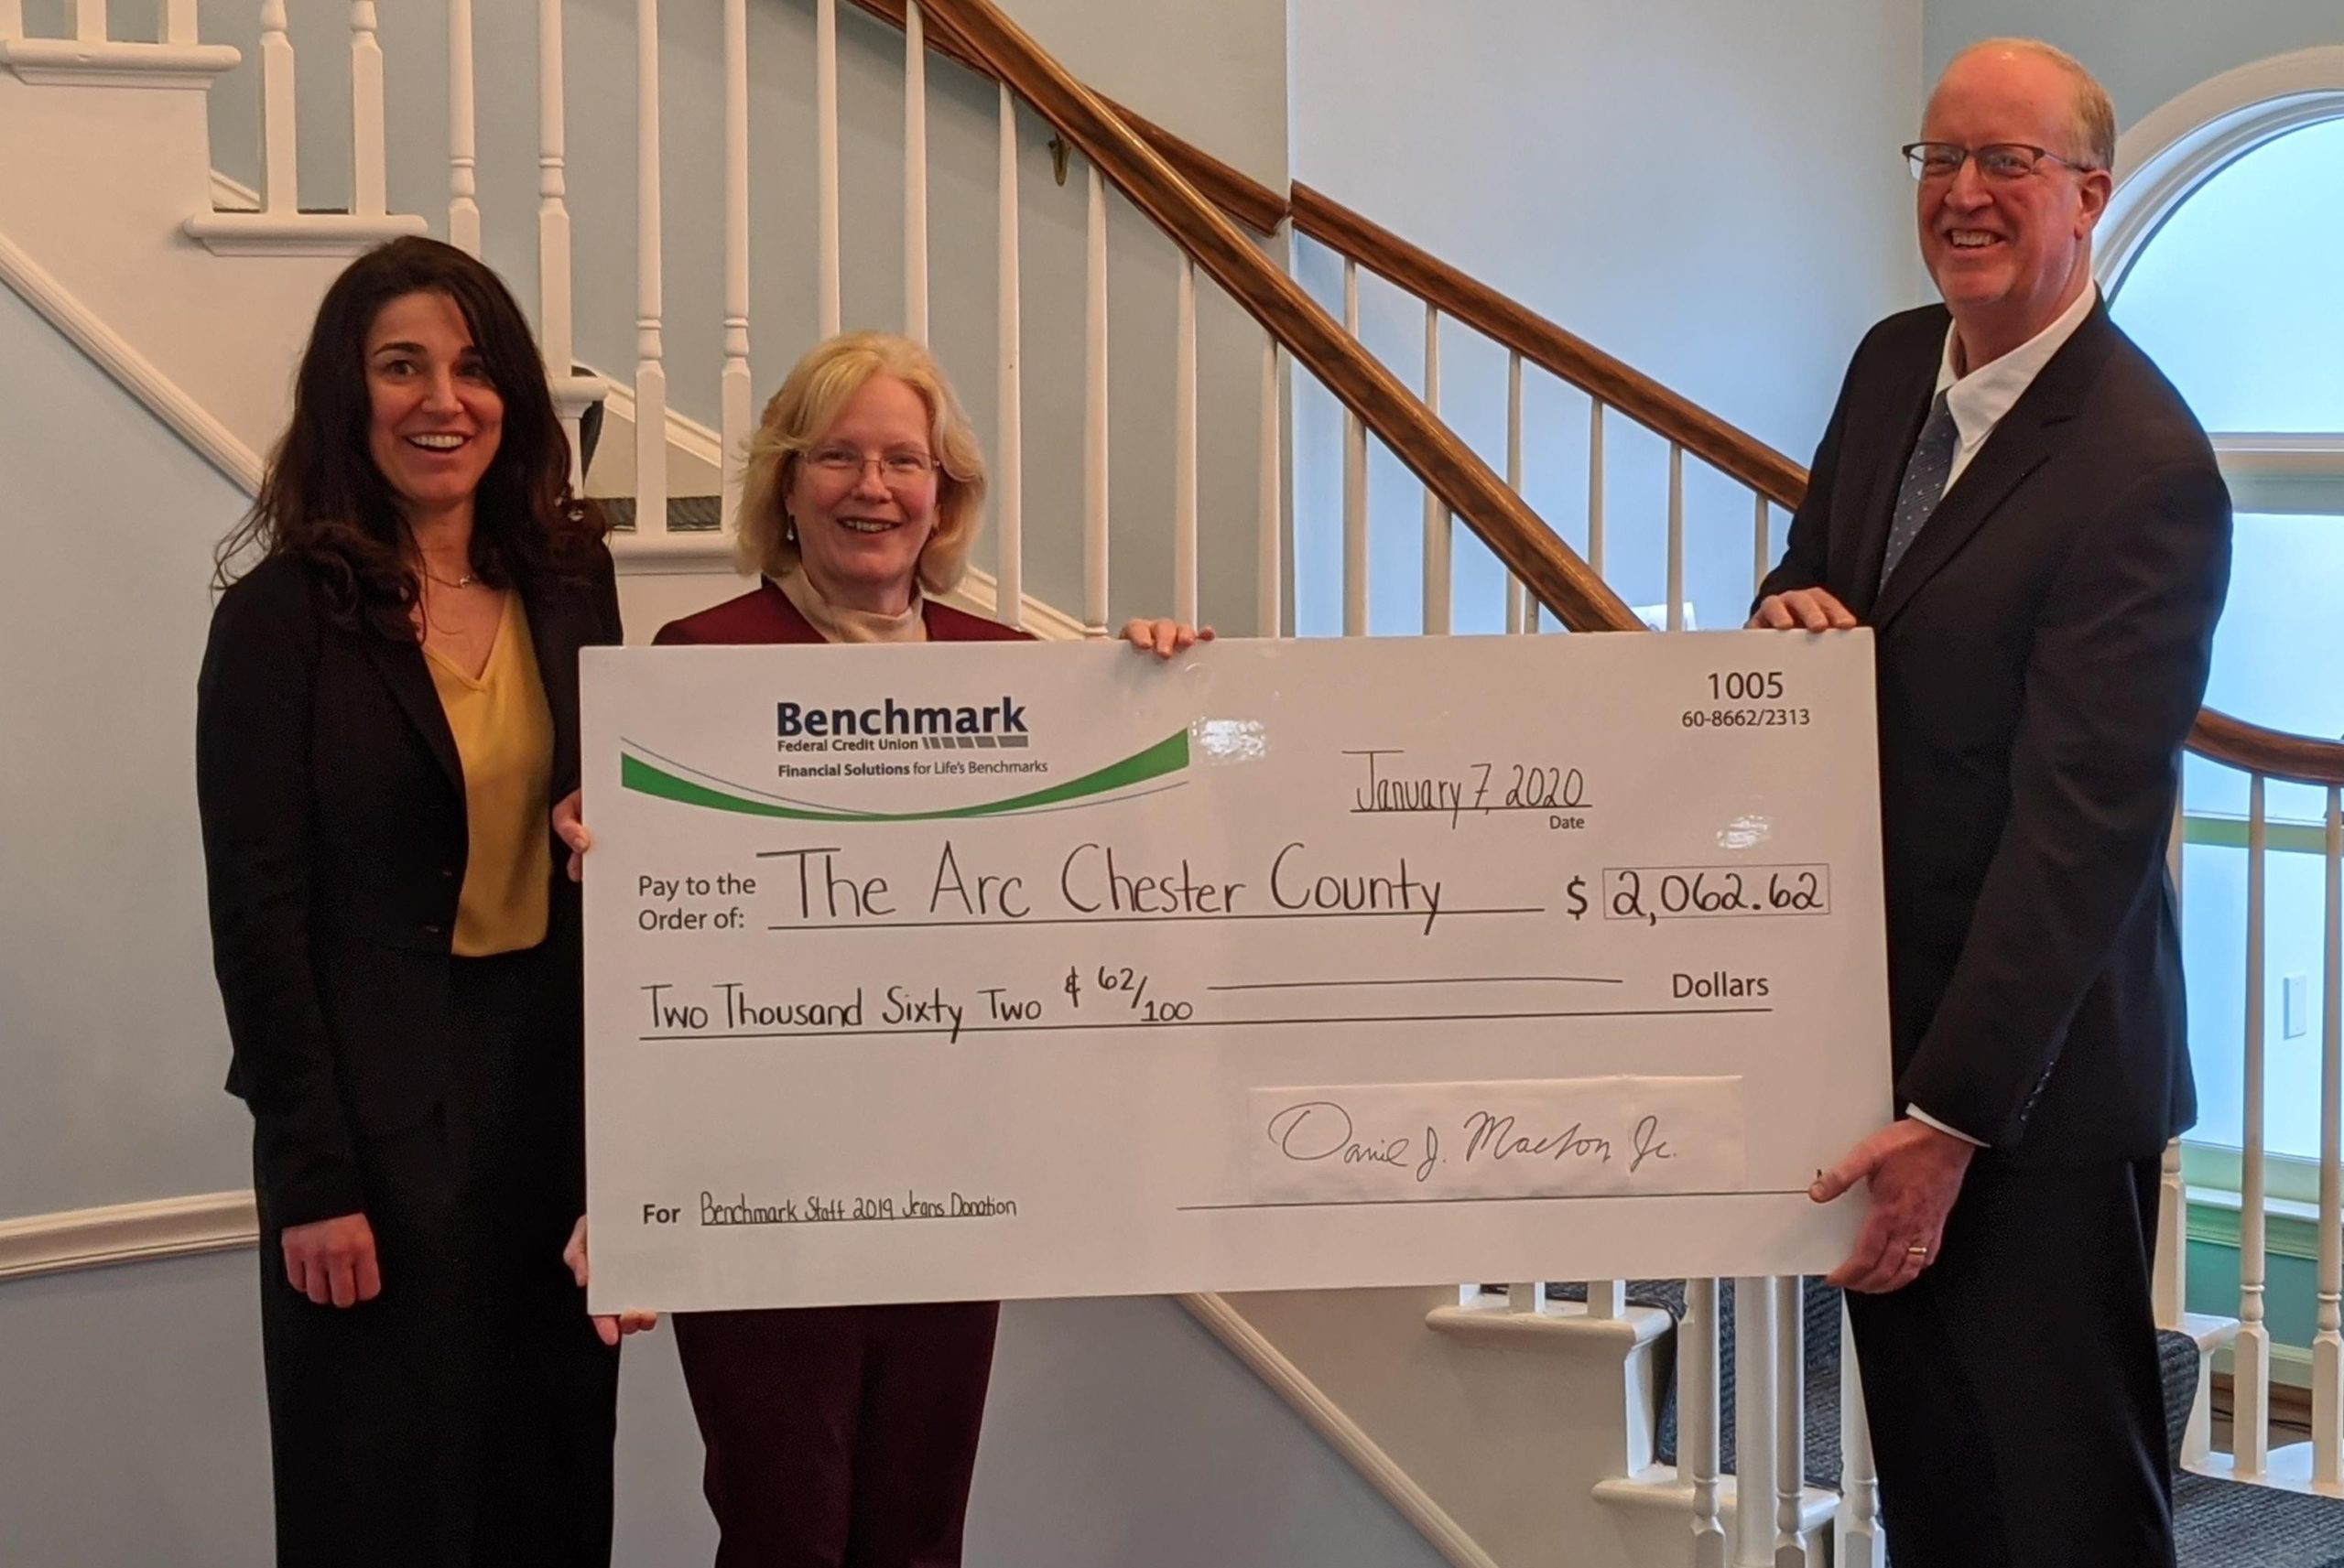 Arc of Chester County Receives Donation to Benefit Individuals with Developmental, Intellectual Disabilities